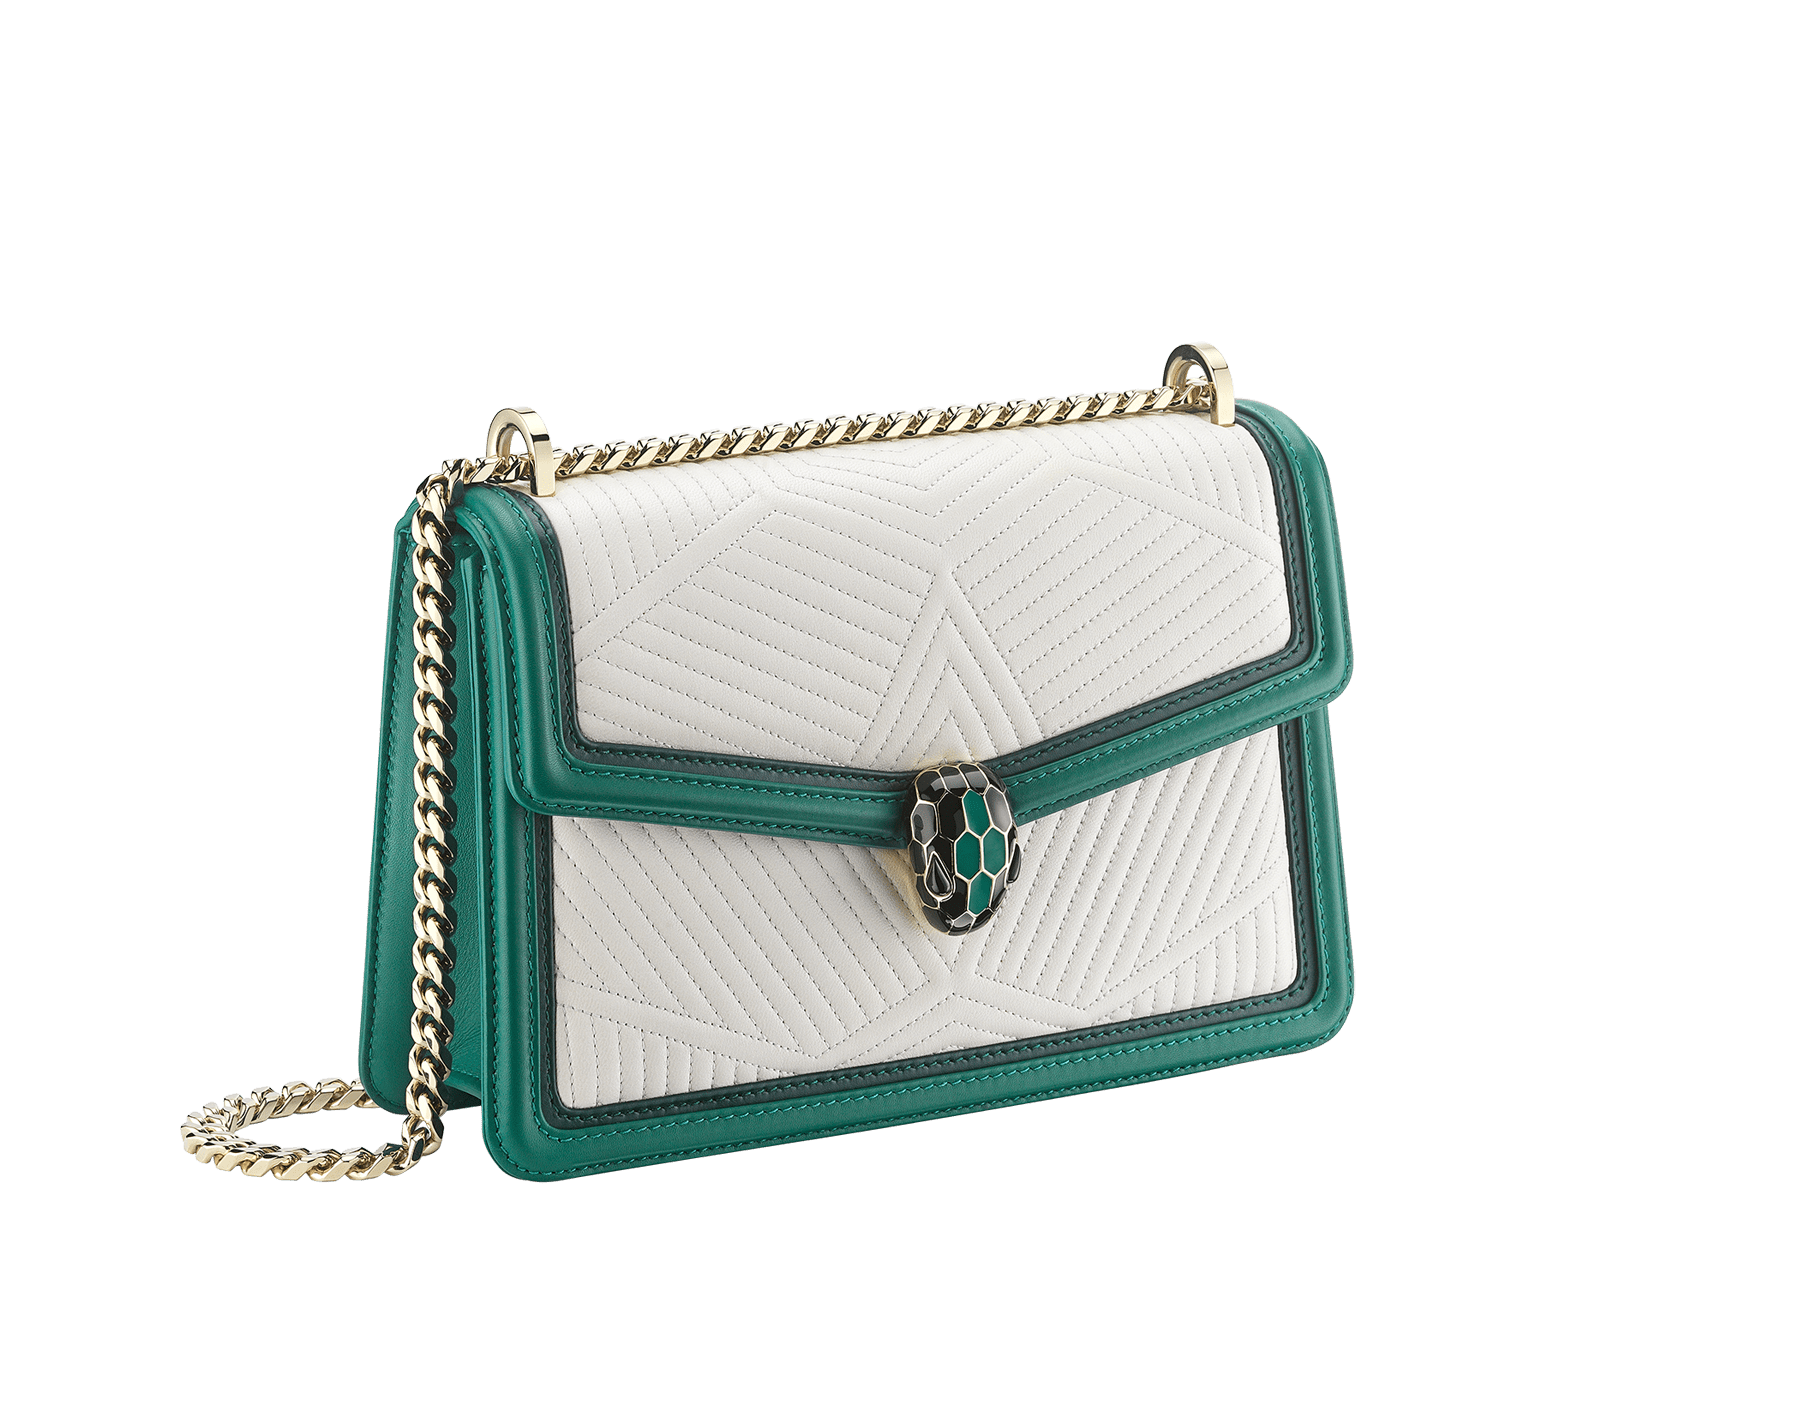 """Serpenti Diamond Blast"" shoulder bag in mimetic jade quilted nappa leather and mimetic jade smooth calf leather frames. Iconic snakehead closure in light gold plated brass enriched with matte black and shiny mimetic jade enamel and black onyx eyes. 922-FQDf image 2"